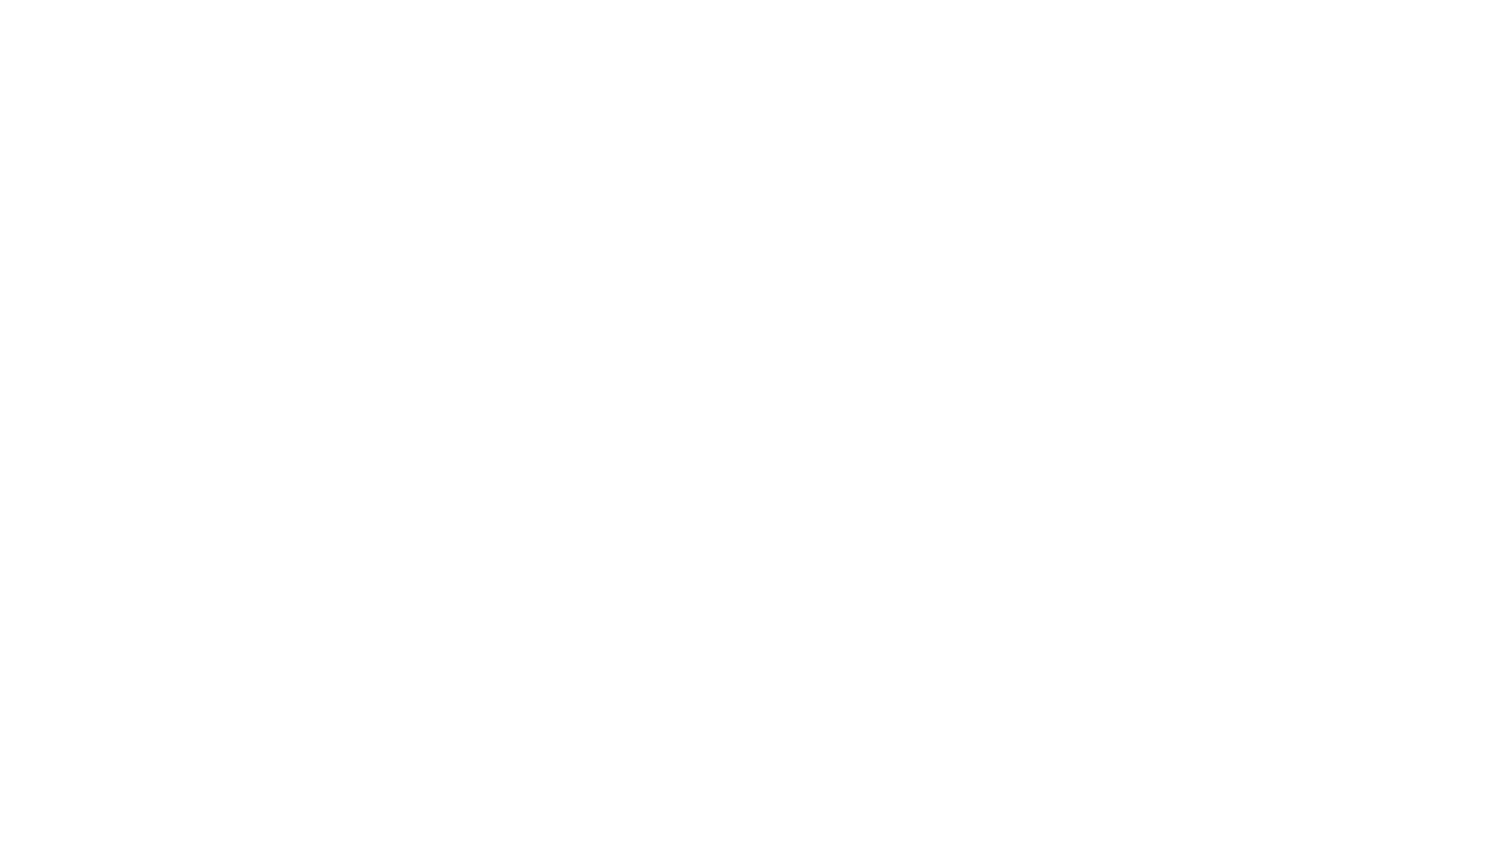 Regenerative Resorts